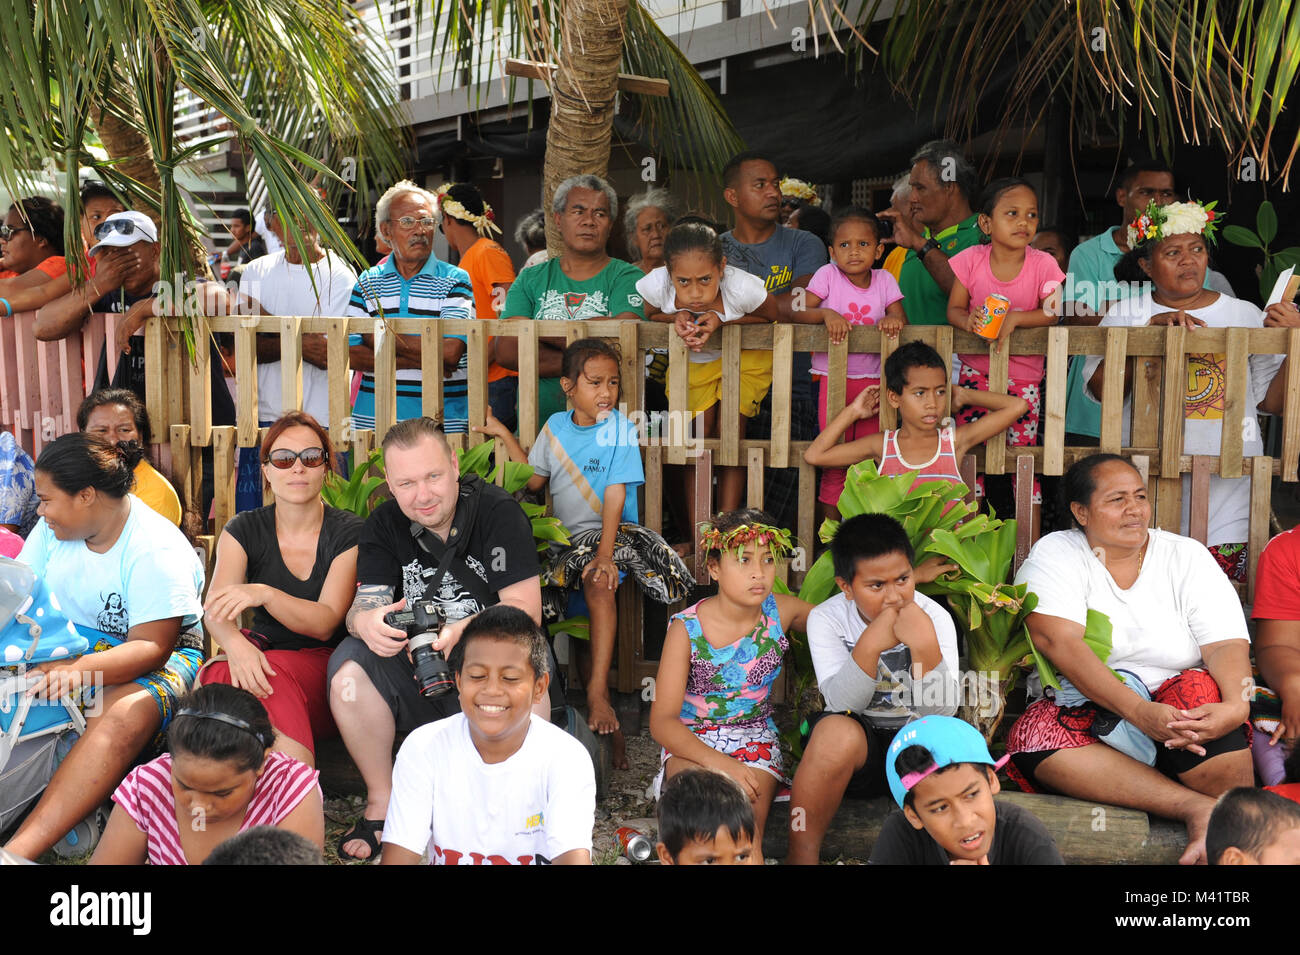 Tuvaluans and tourists watch the parade through Funafuti during annual Independance Day celebrations - Stock Image